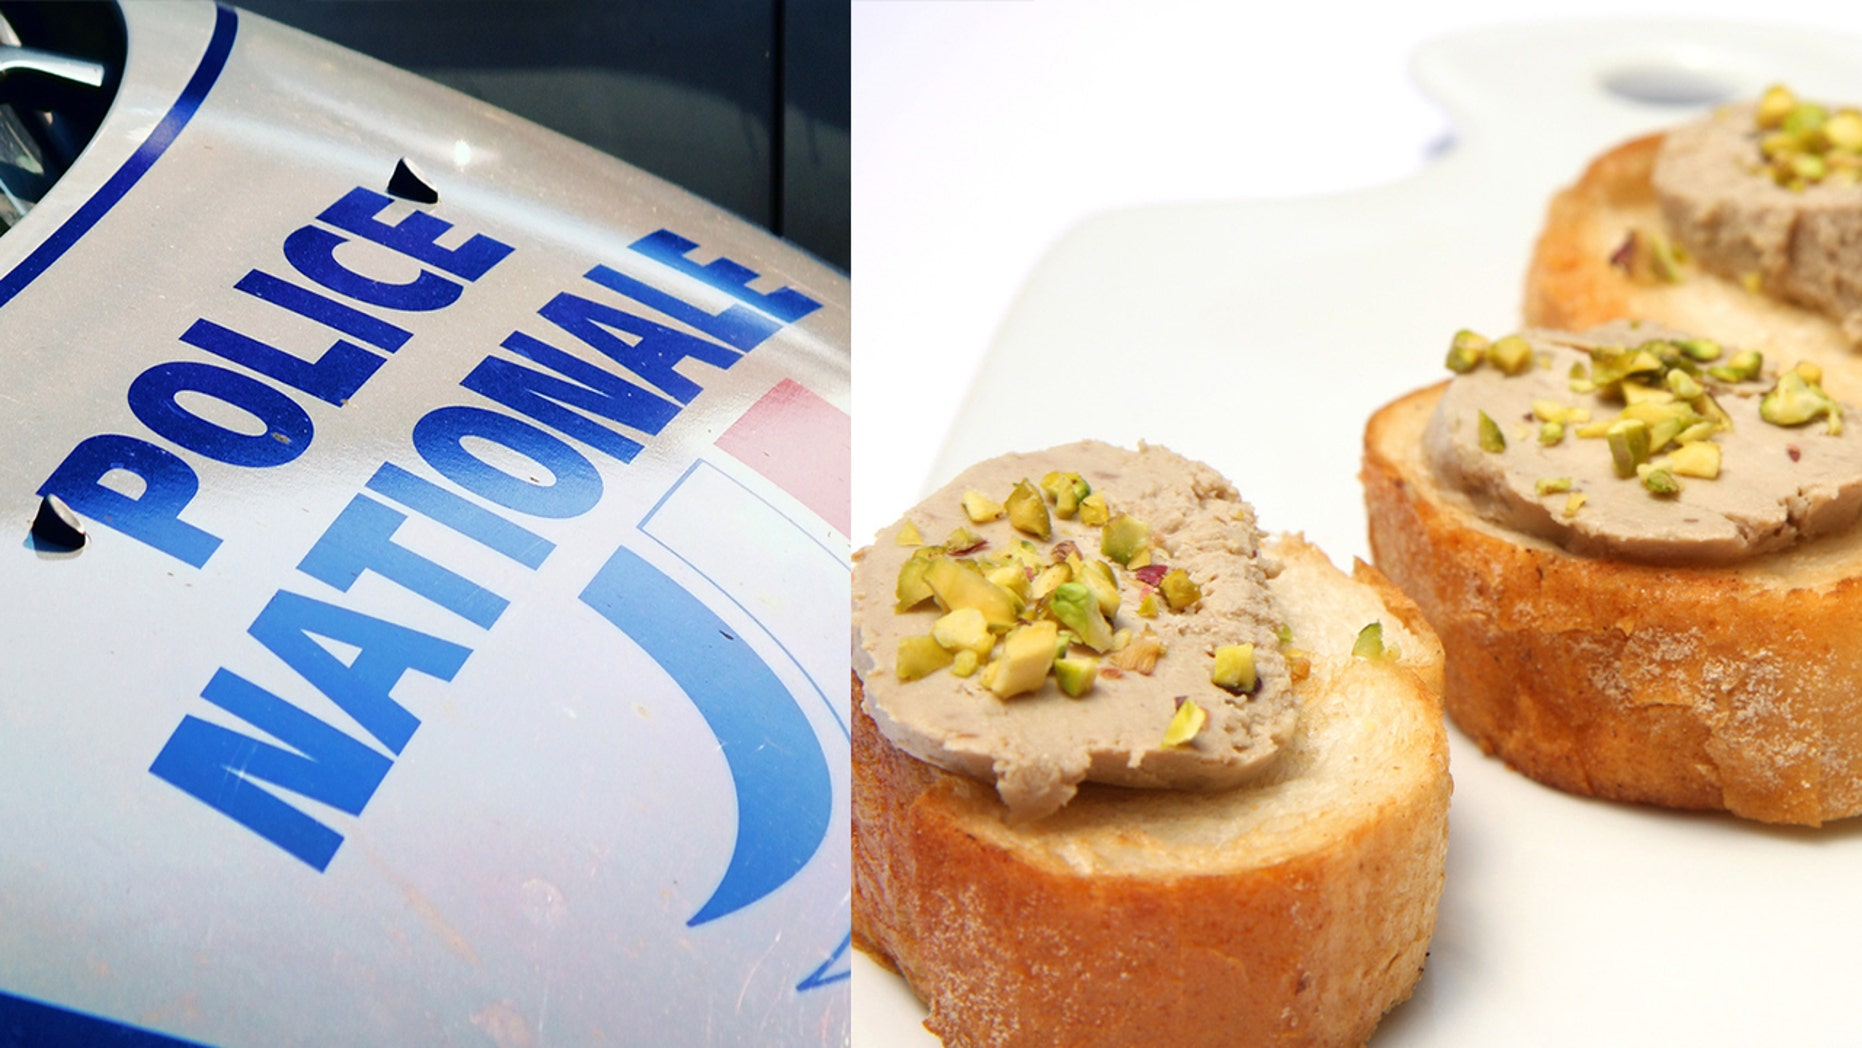 Police say the man was eating foie gras on toast, while also watching a movie on his laptop on the car dashboard while he was driving.